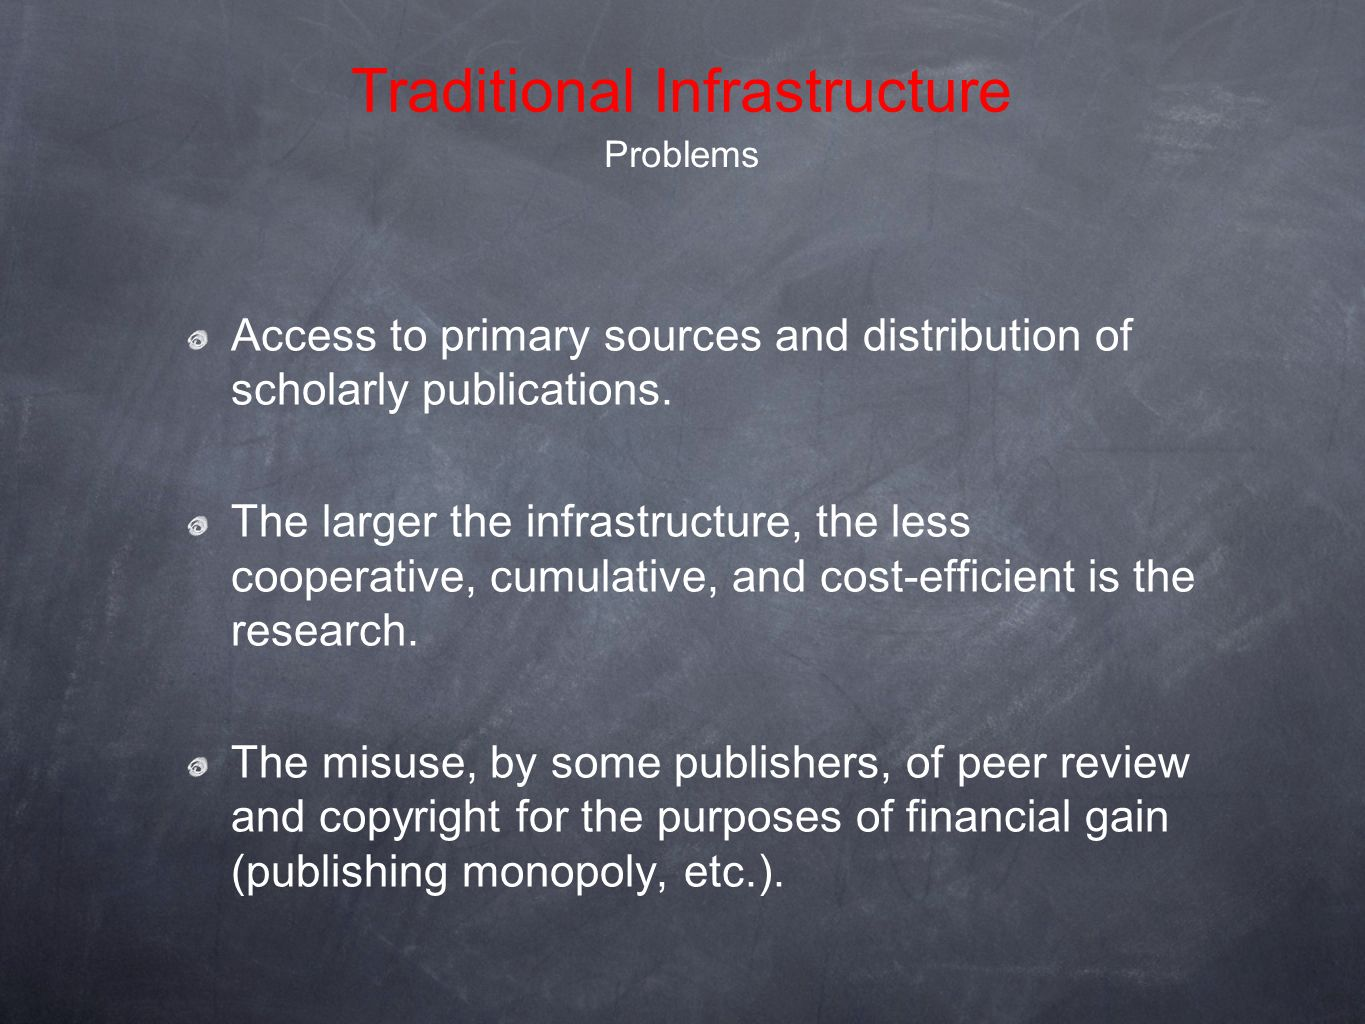 Access to primary sources and distribution of scholarly publications.